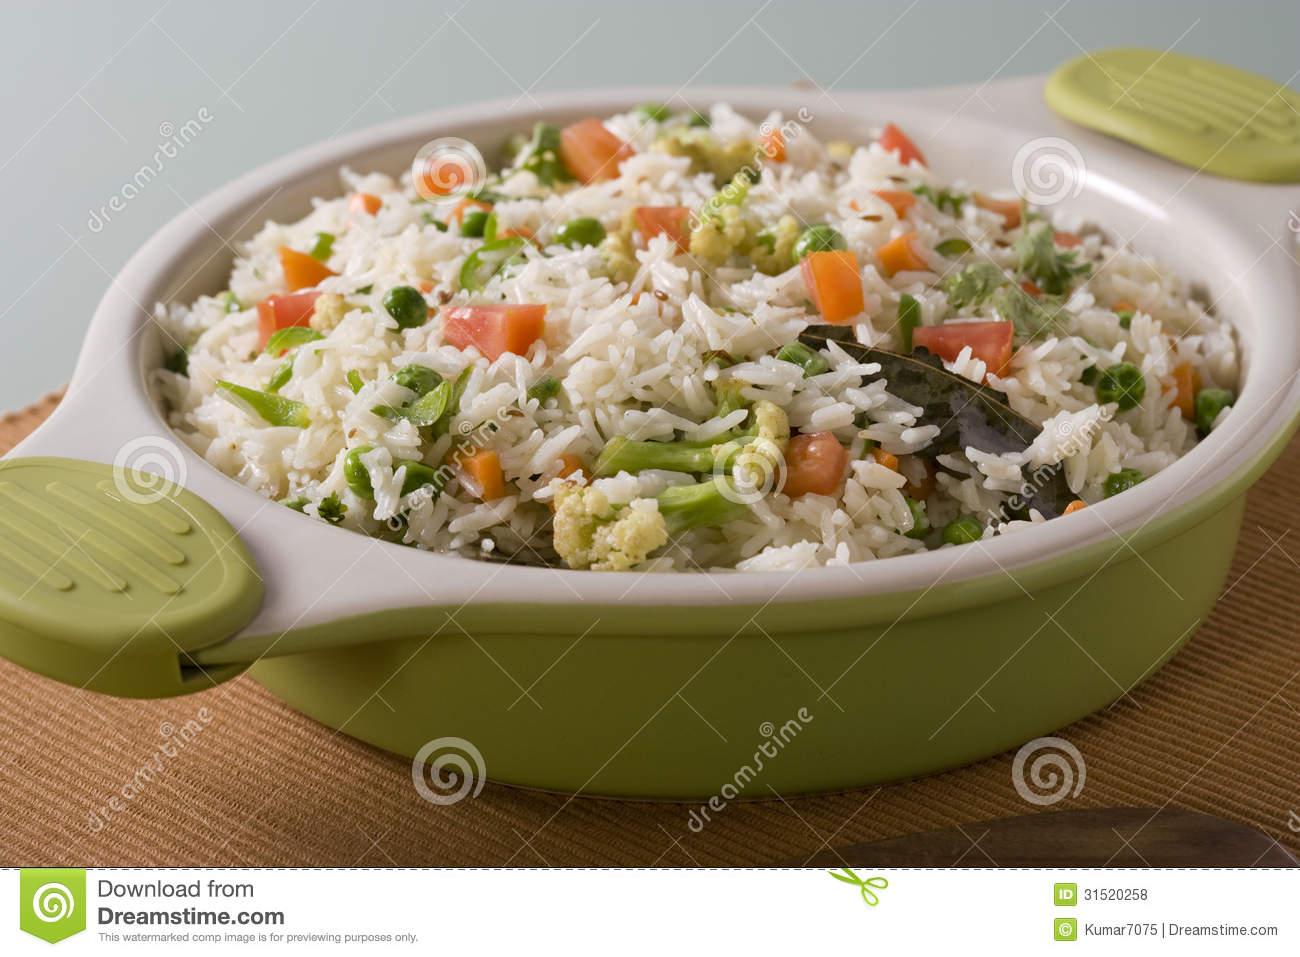 Vegetable Rice Or Indian Vegetable Biryani Royalty Free Stock Photos ...